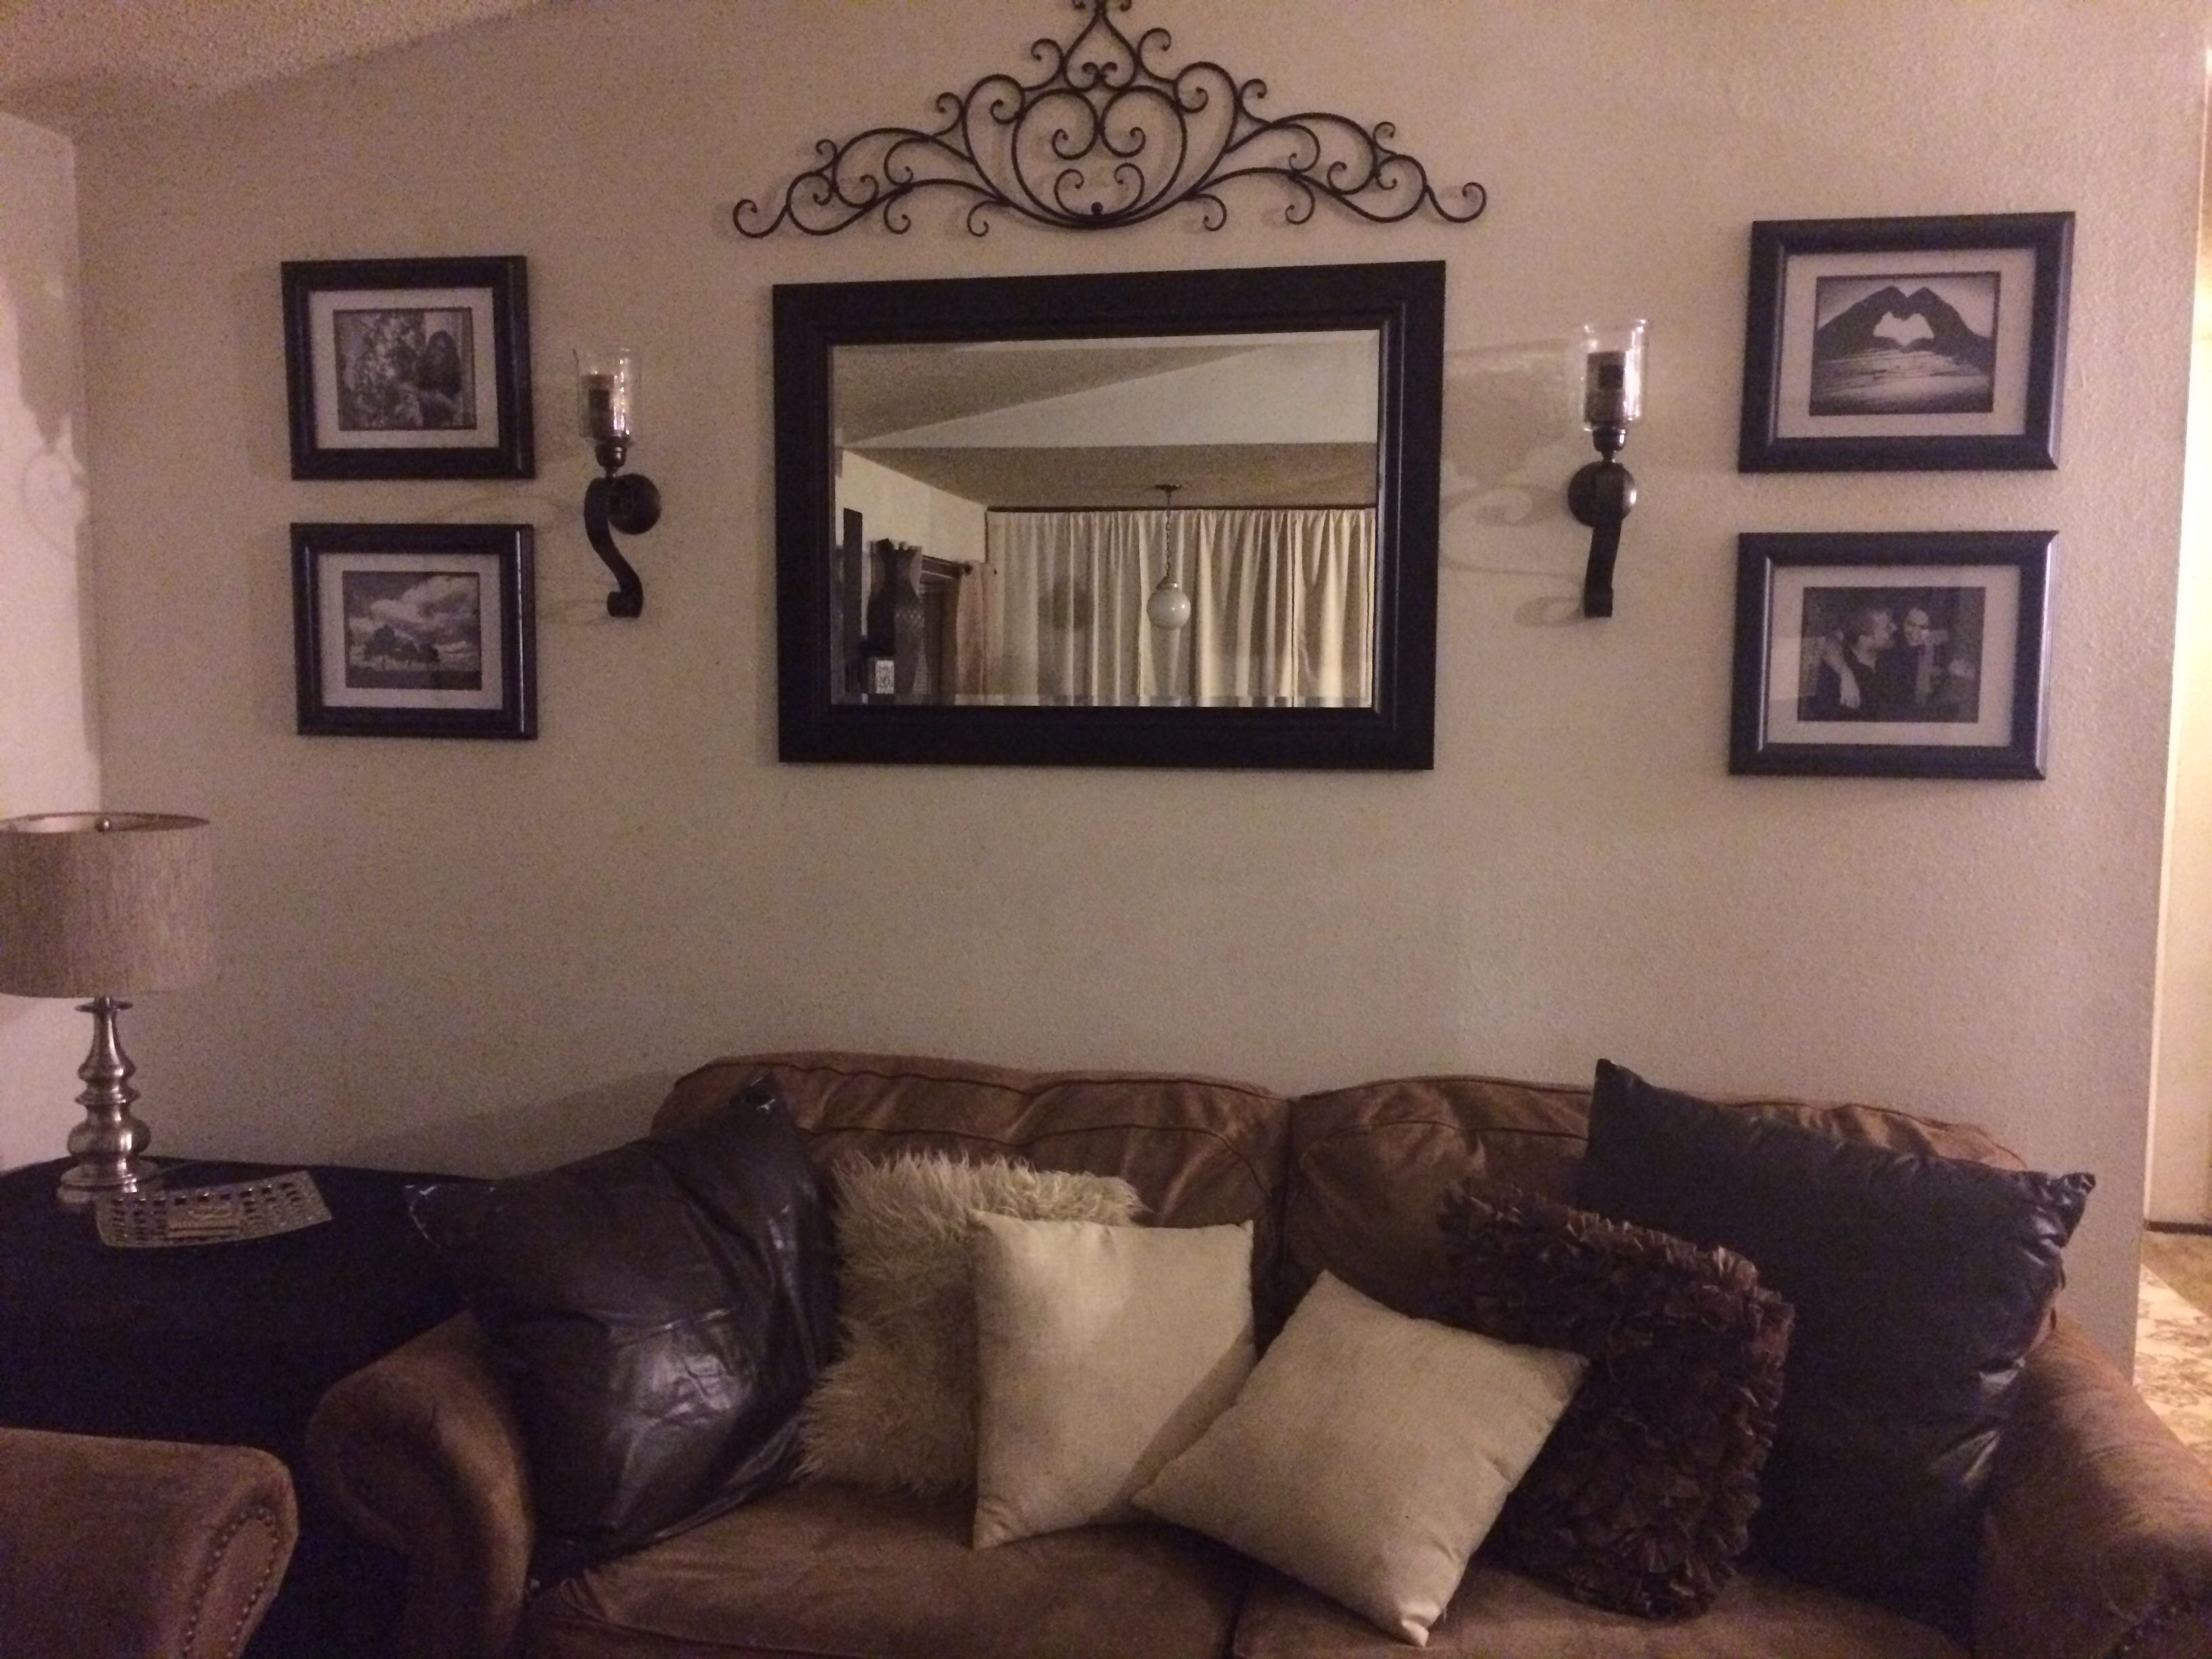 behind couch wall in living room mirror frame sconces and metal decor - Ideas For Decor In Living Room